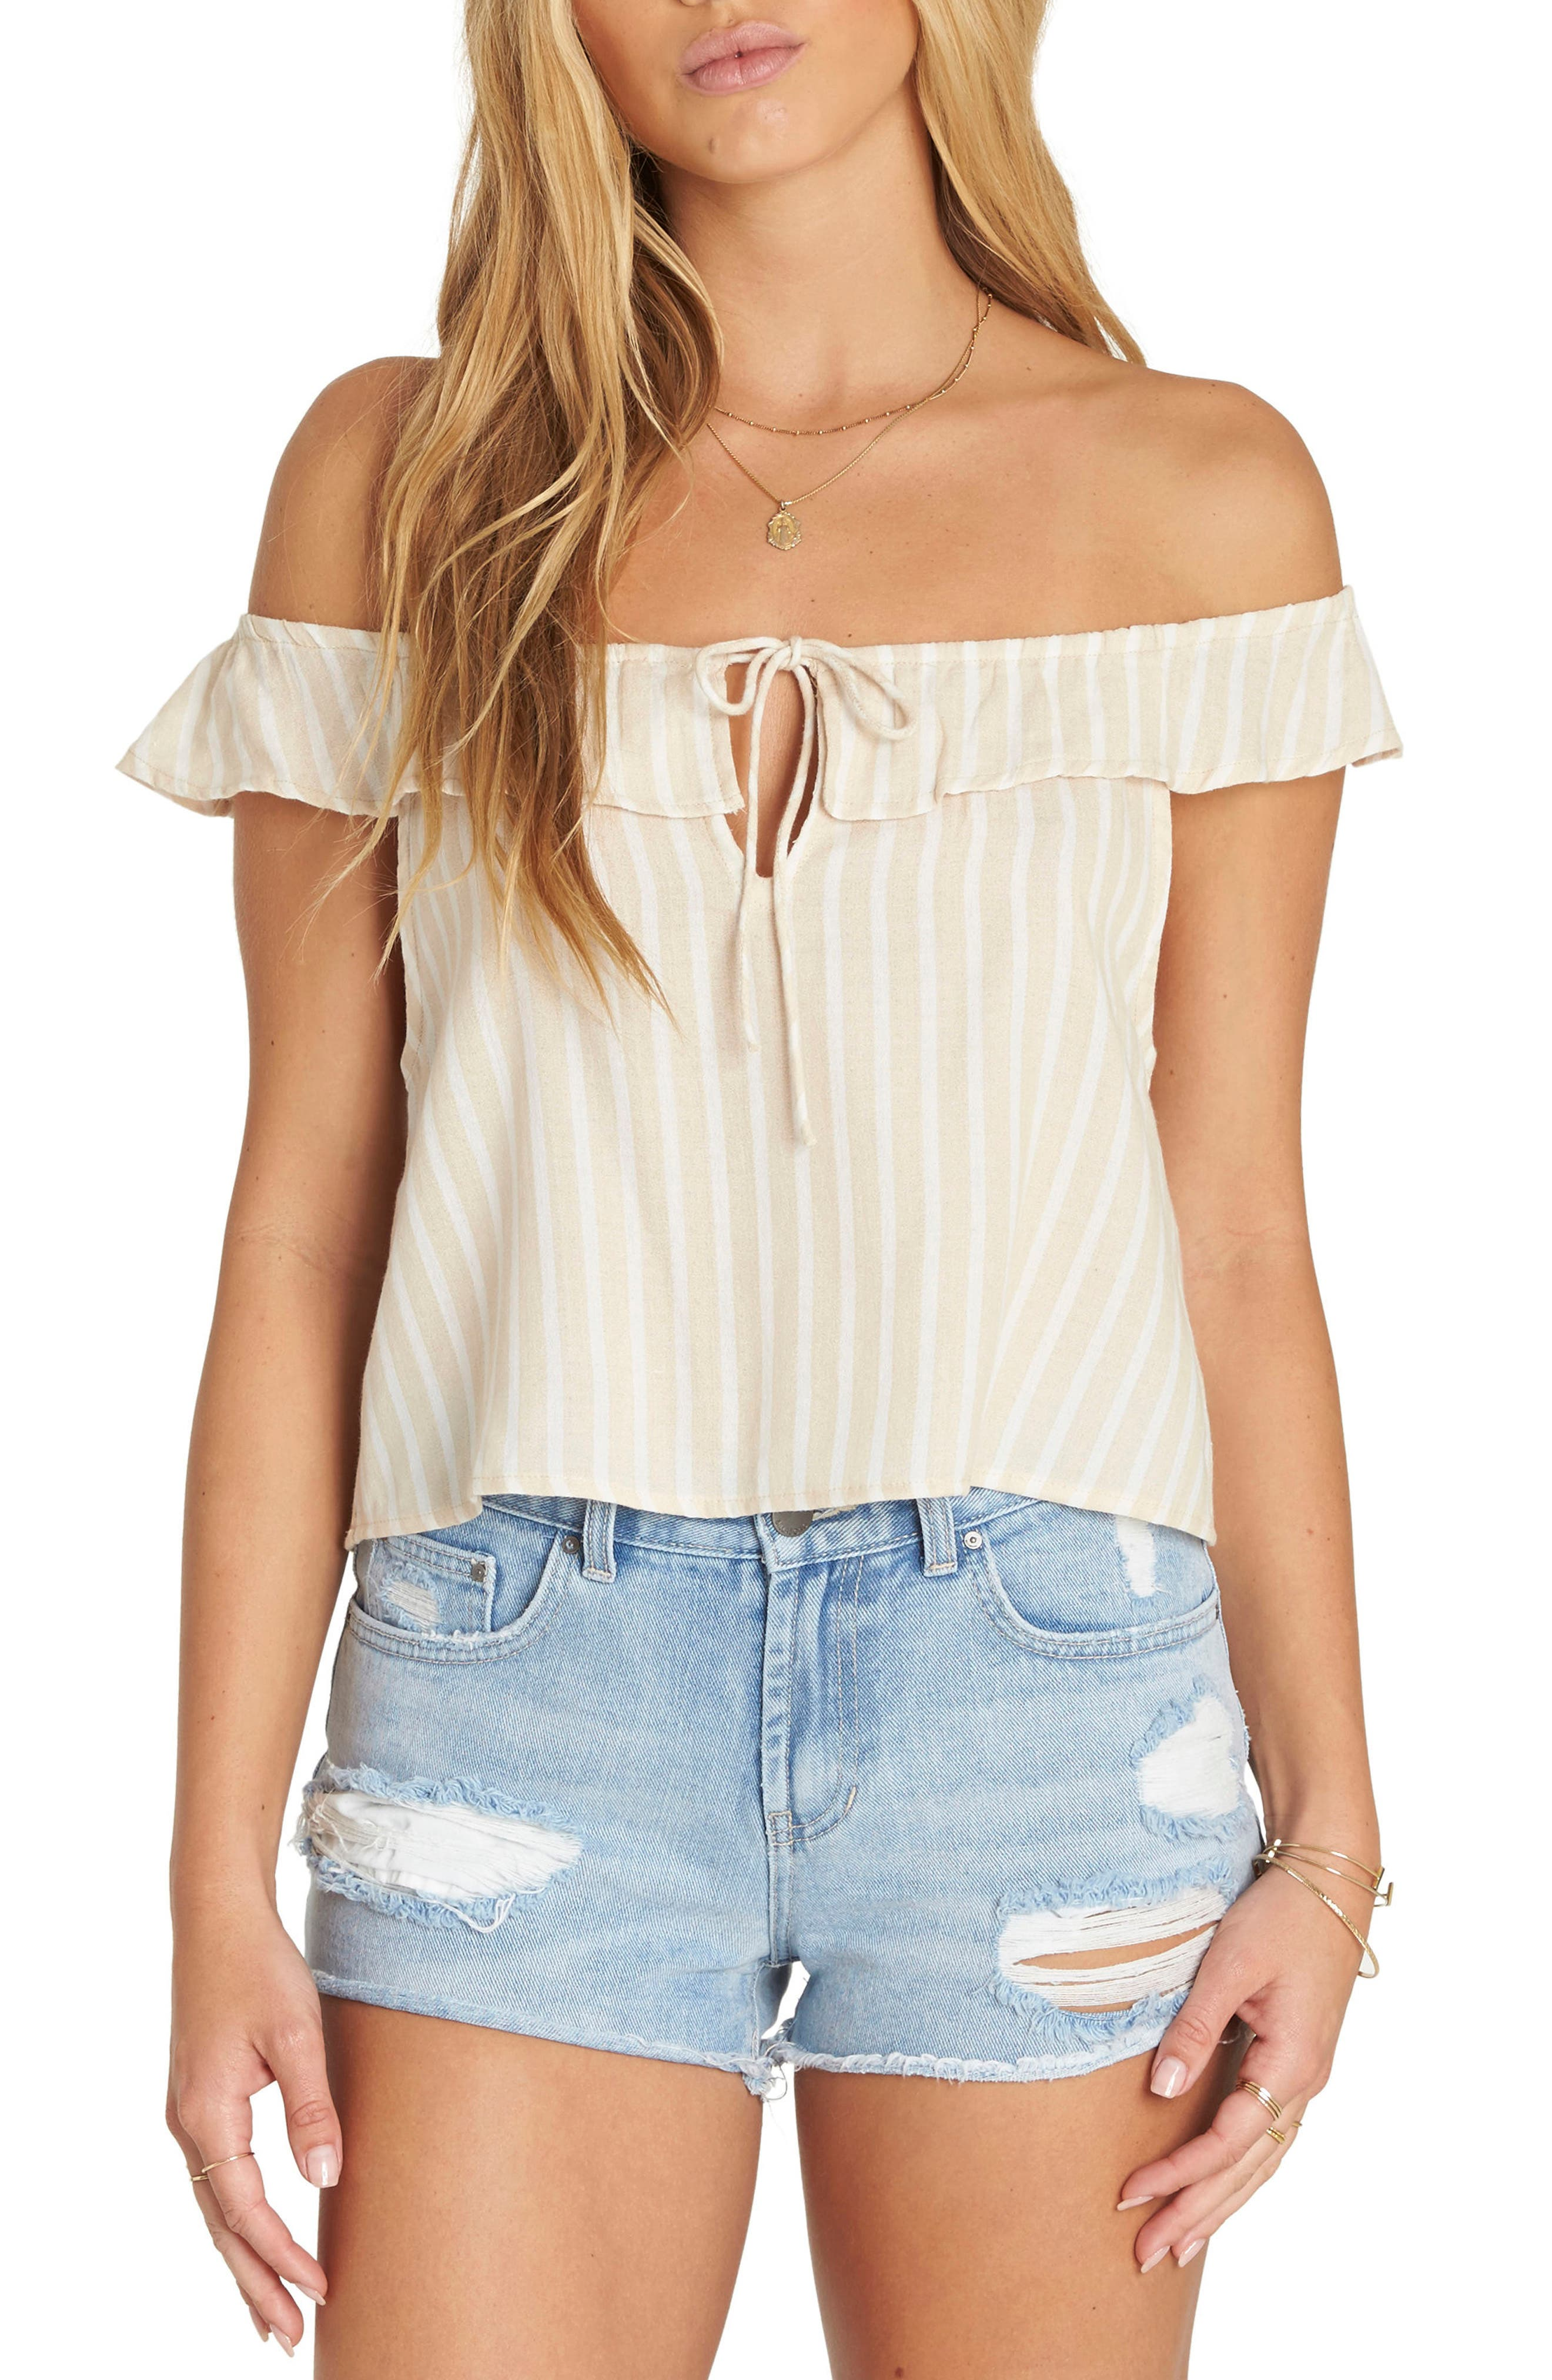 Peach Kisses Off the Shoulder Top,                             Main thumbnail 1, color,                             250